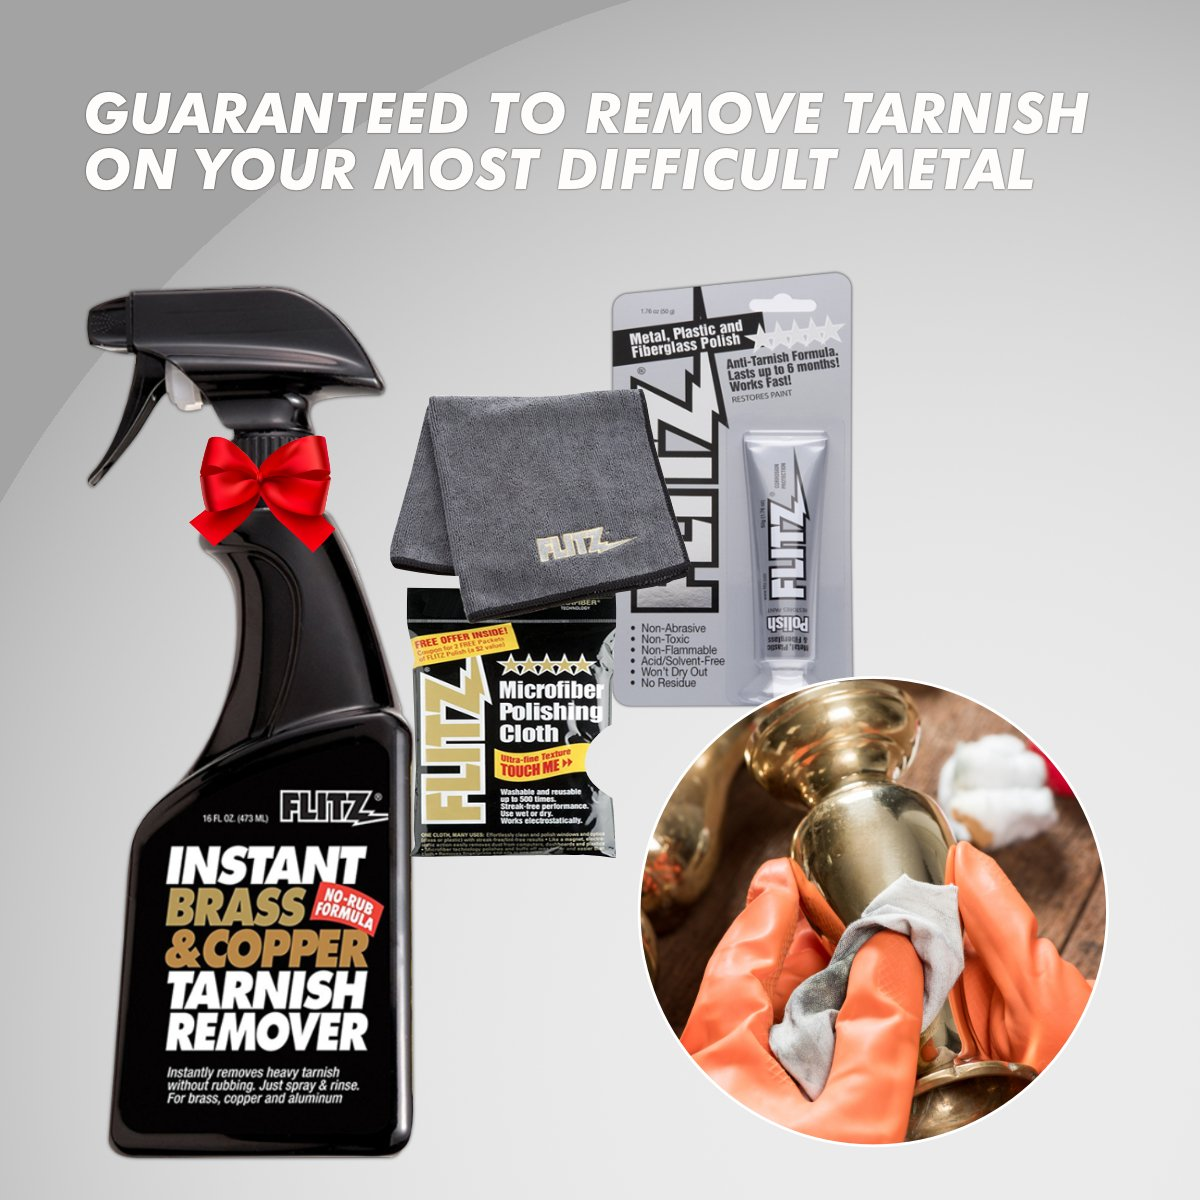 Flitz BC 01806 Instant Brass and Copper Tarnish Remover 16 oz Spray Cleaner + 1.79oz Metal Polish Paste + EXTRA LARGE Microfiber Cloth Shine Away Corrosion by Flitz (Image #5)